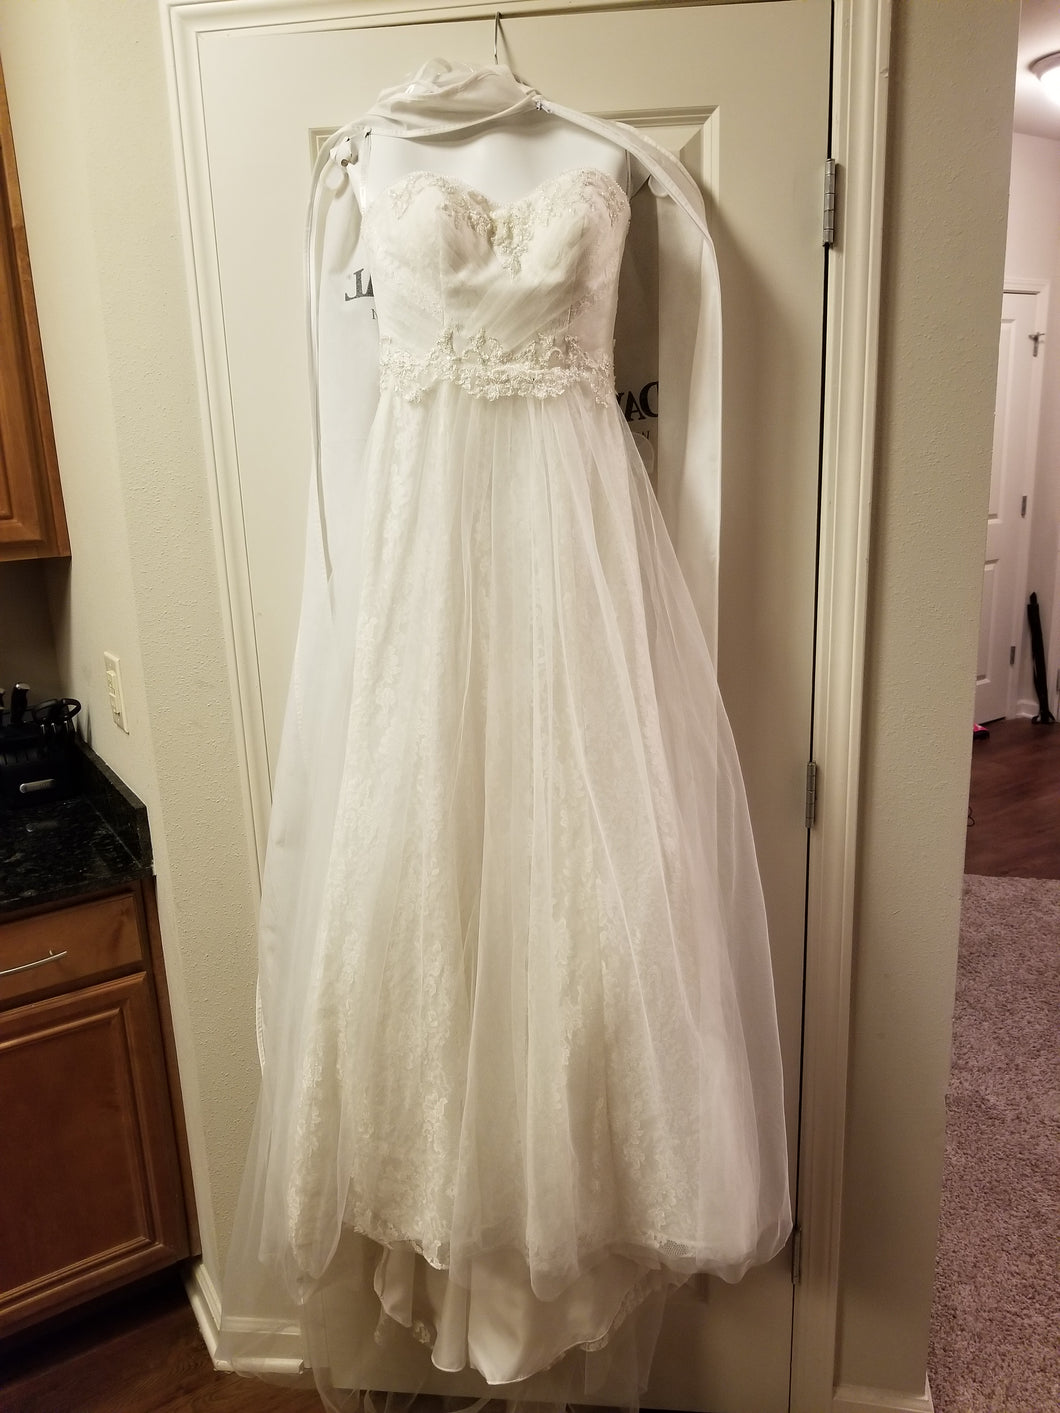 David's Bridal 'Strapless Tulle' size 2 new wedding dress front view on hanger